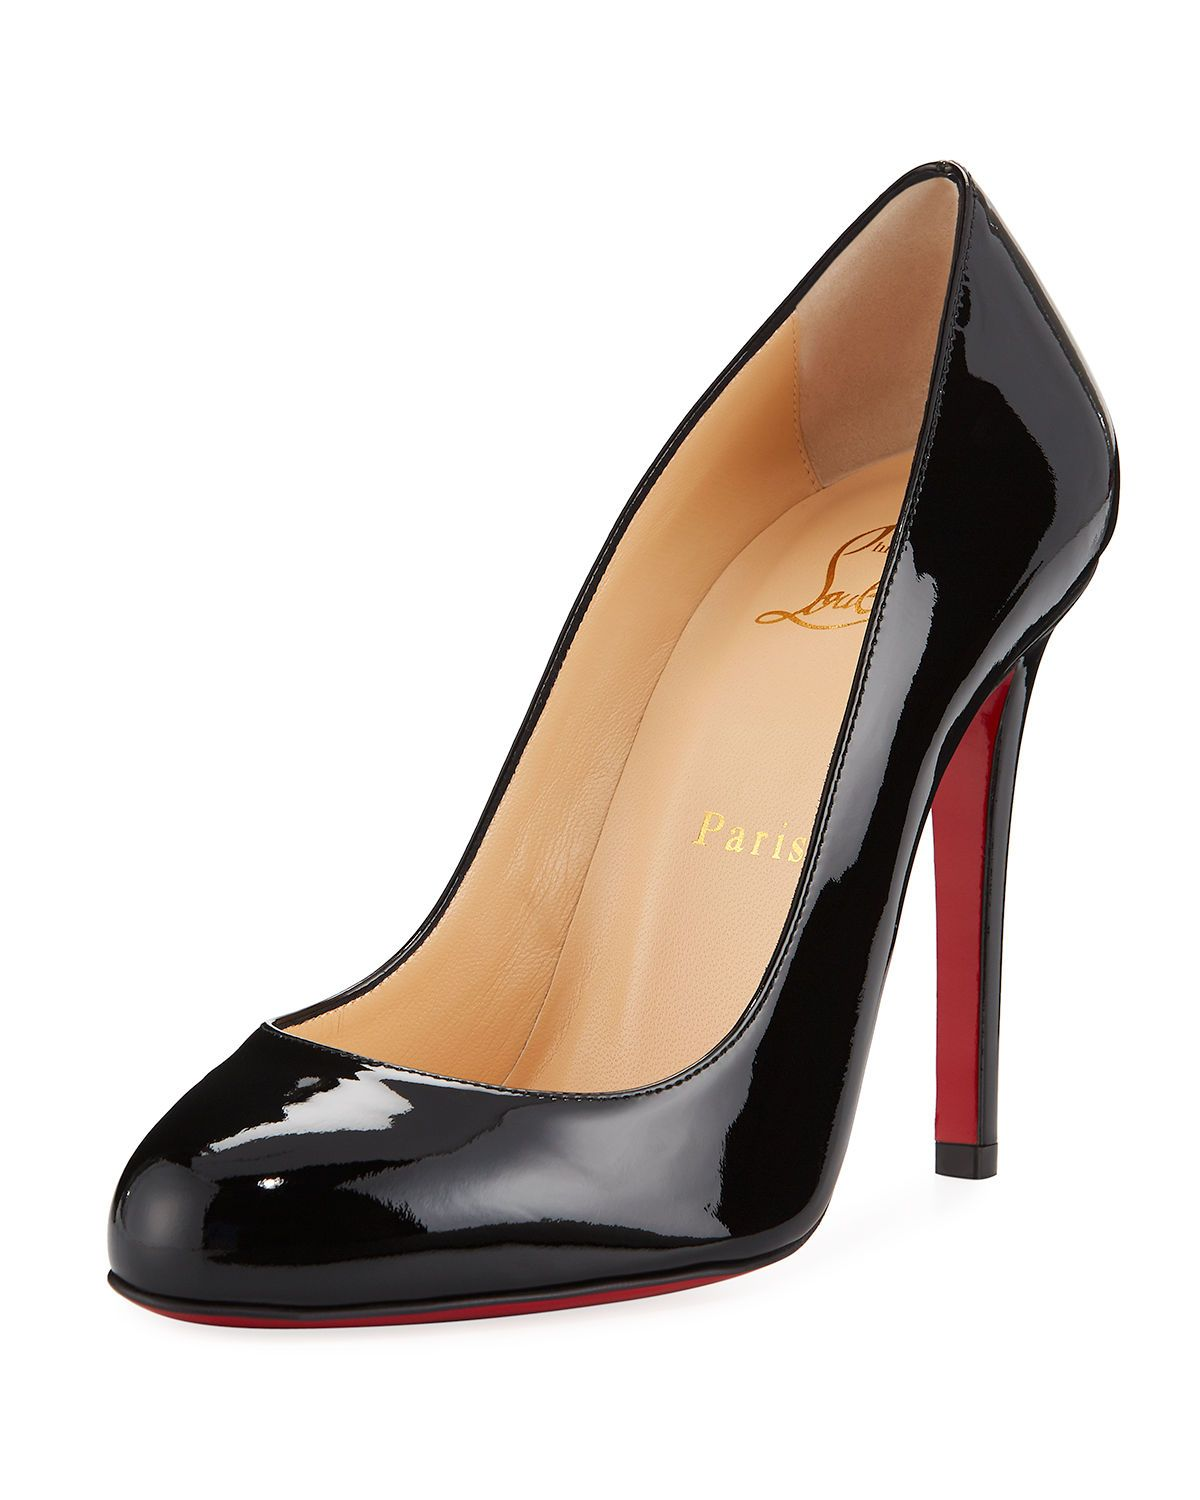 nouvelle arrivee bb54b b5ddd Christian Louboutin Fifille Patent Red Sole Pump in 2019 ...